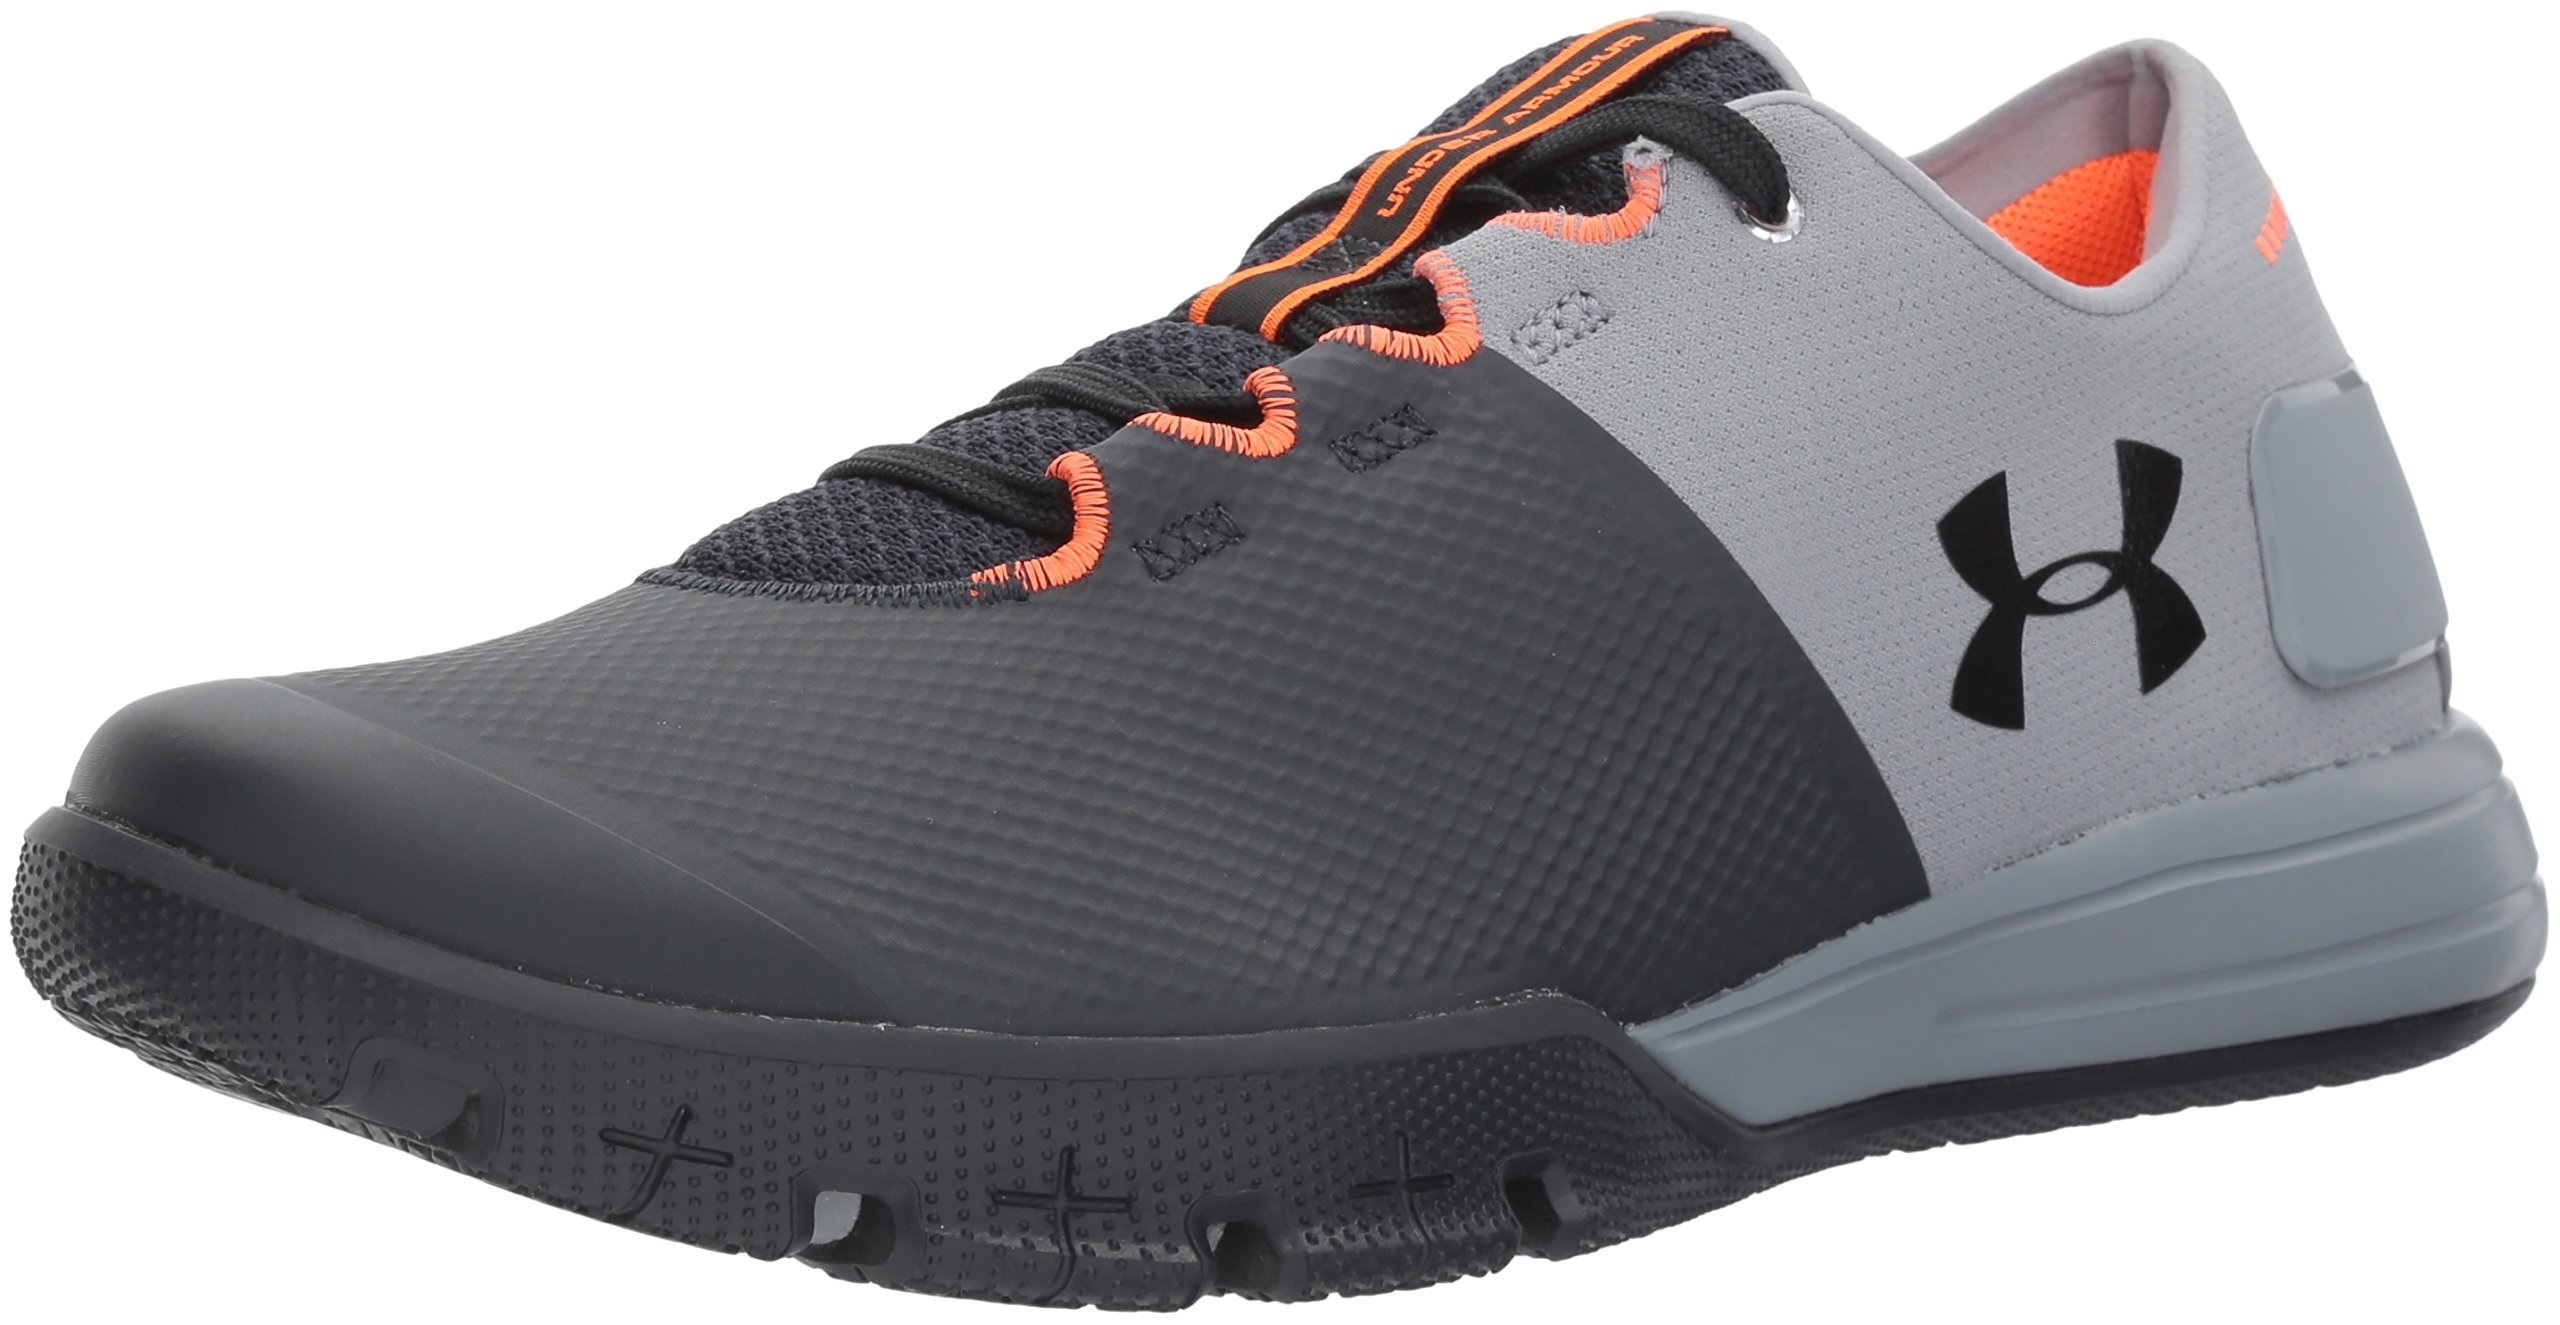 Under Armour Men's Charged Ultimate 2.0 Sneaker, Steel (036)/Anthracite, 11